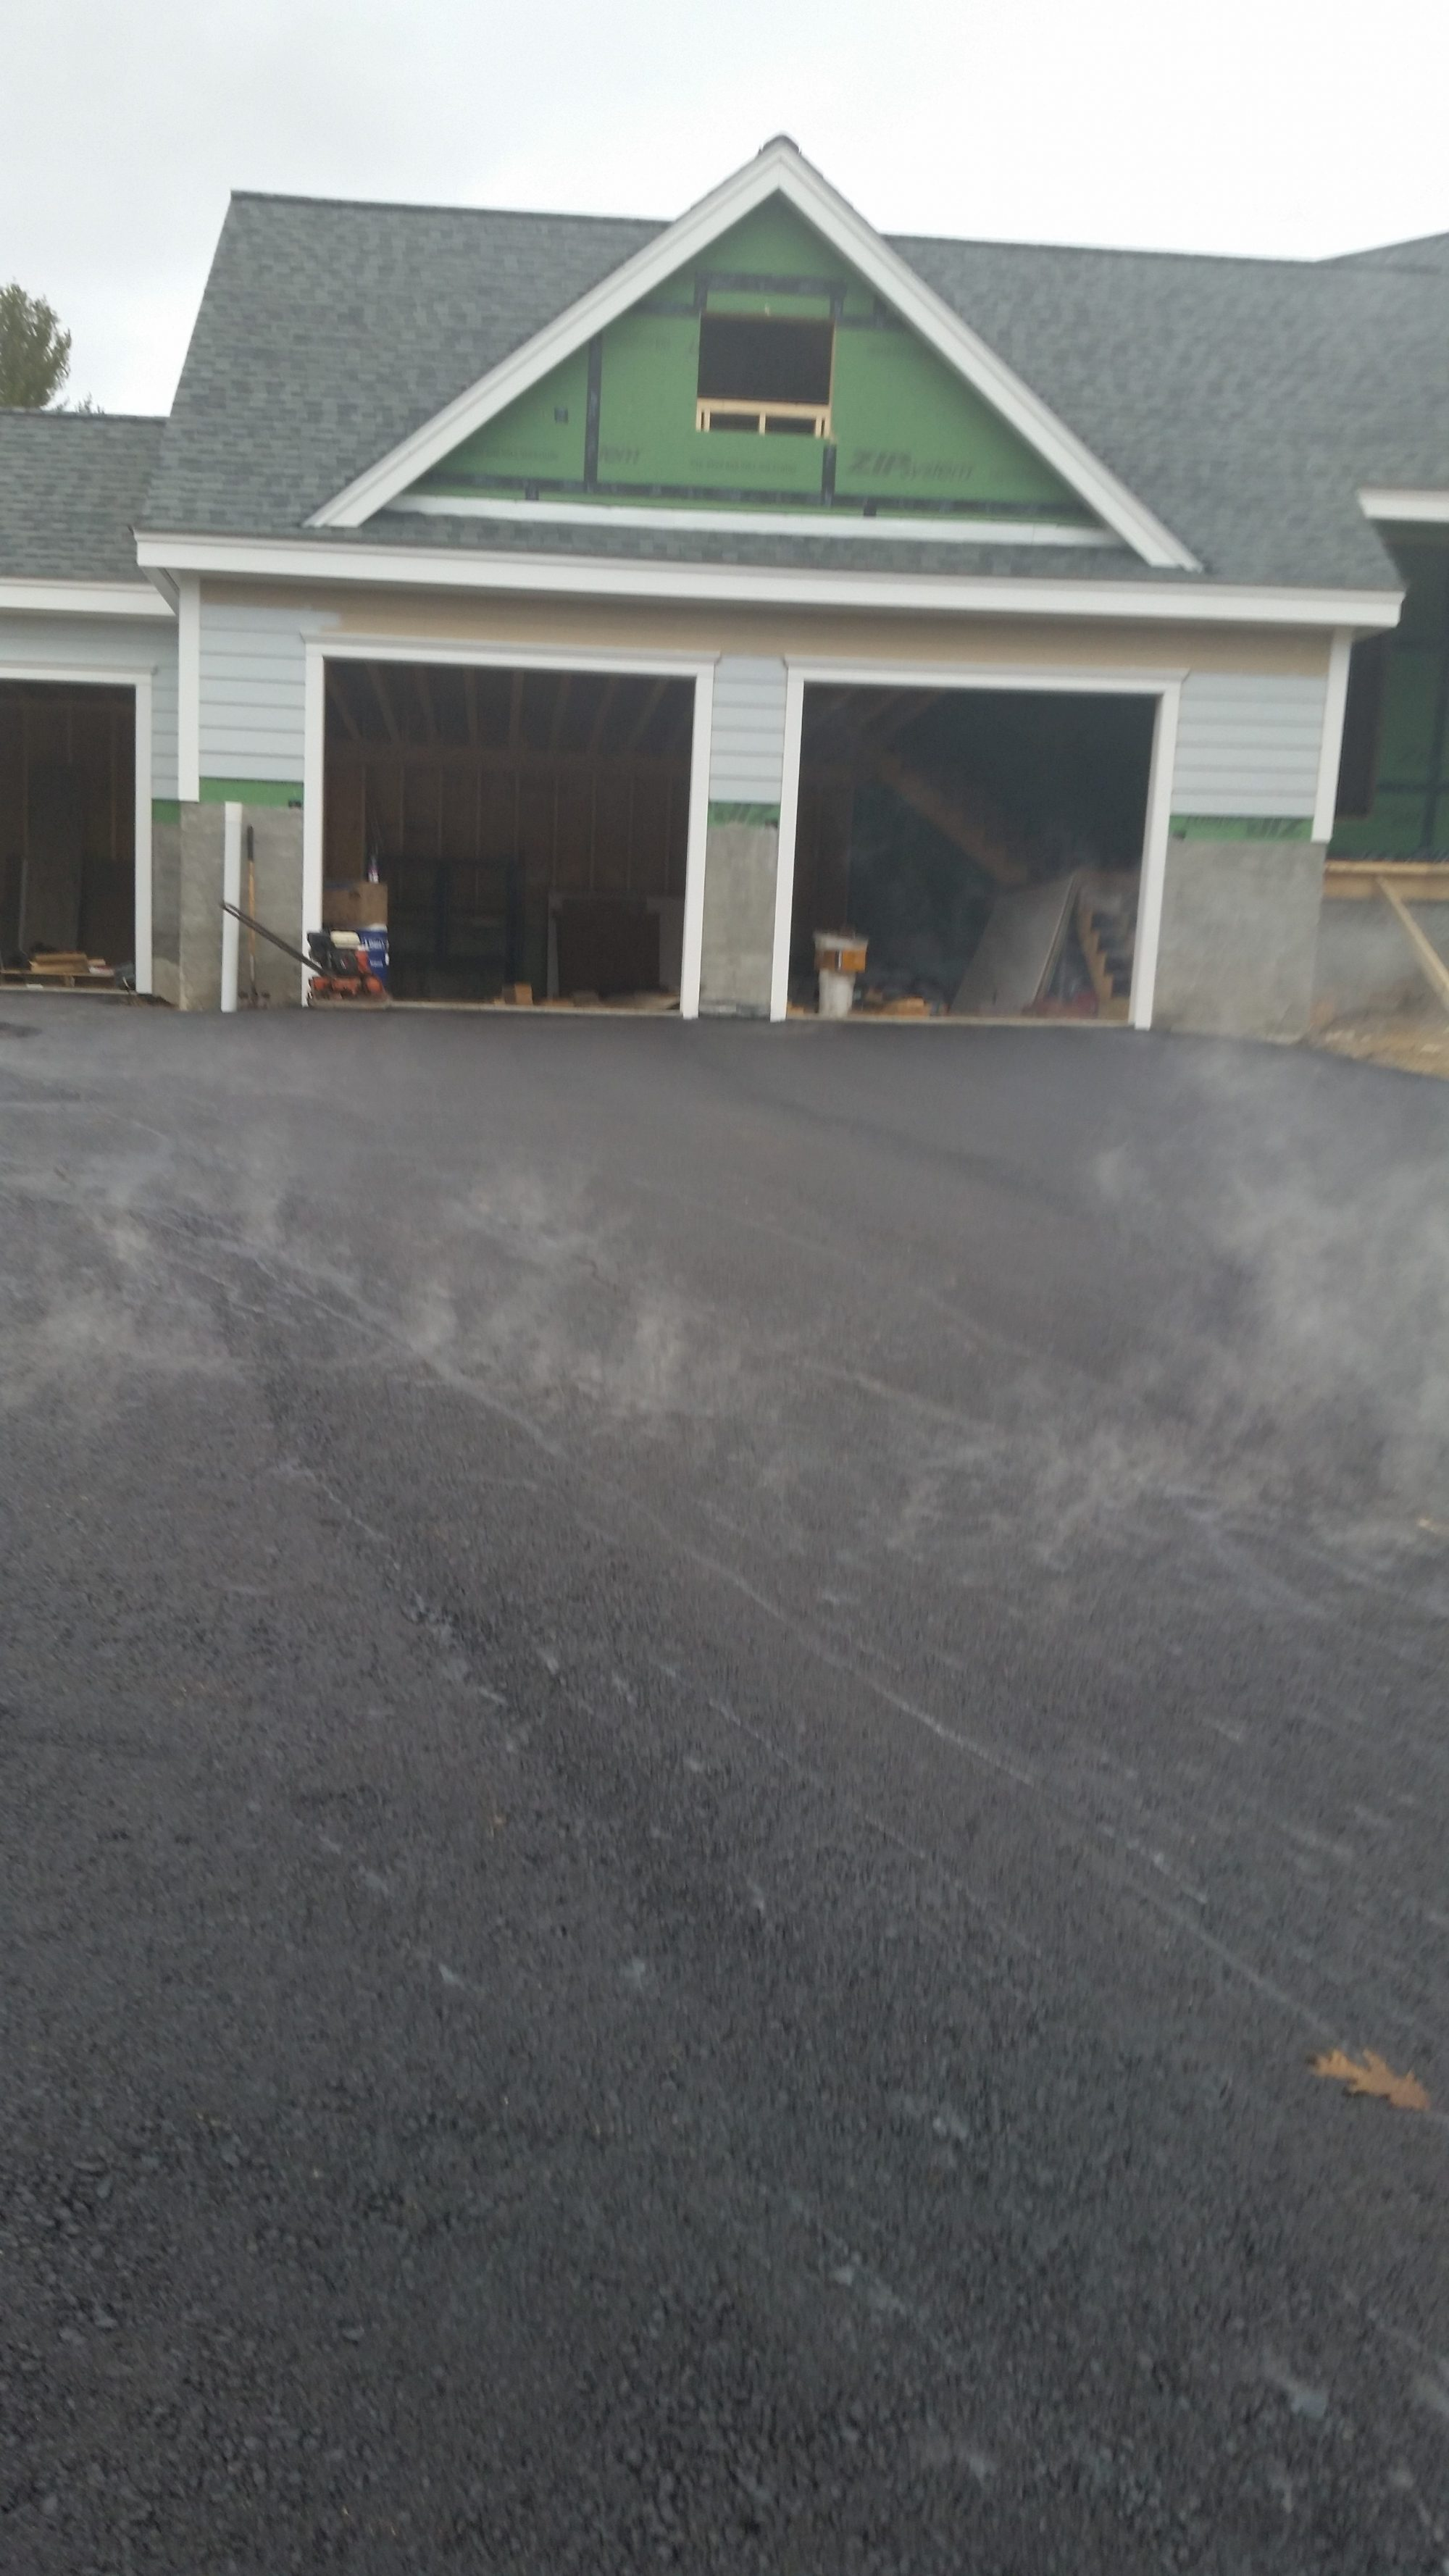 new pavement for residential driveway in NH